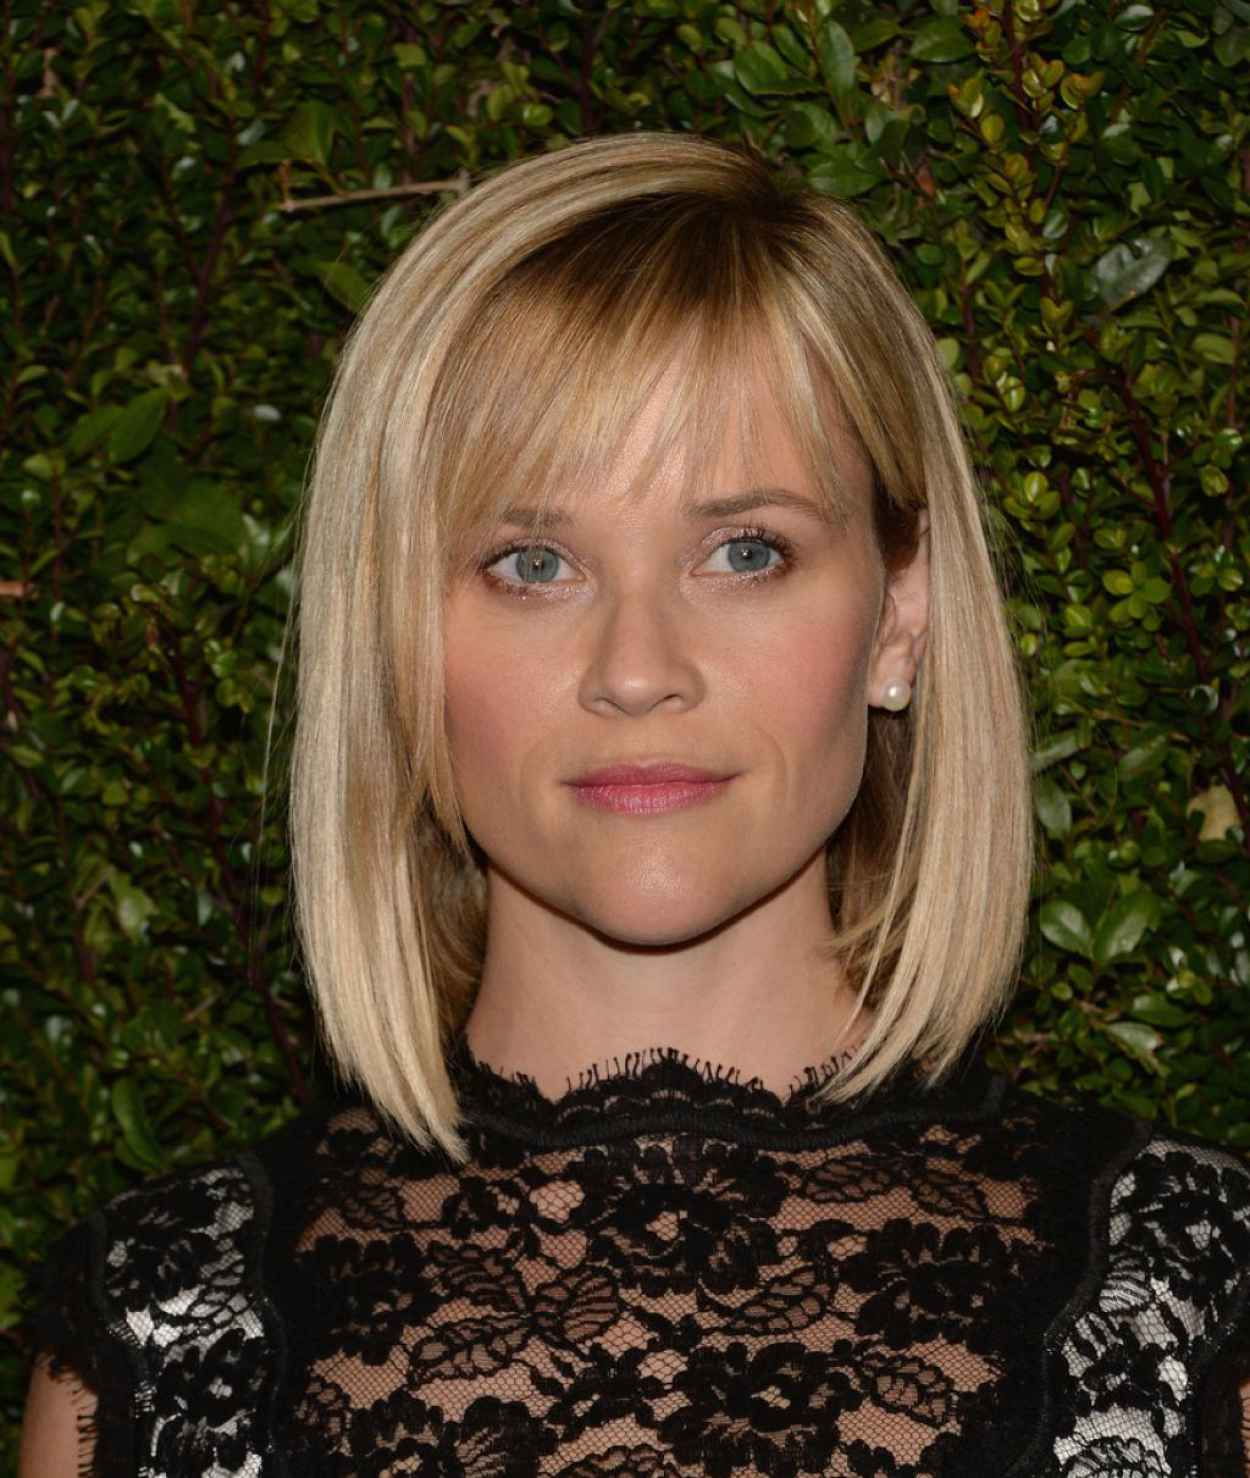 Reese Witherspoon at Drew Barrymores Photo Book at Chanel Boutique in Beverly Hills-1